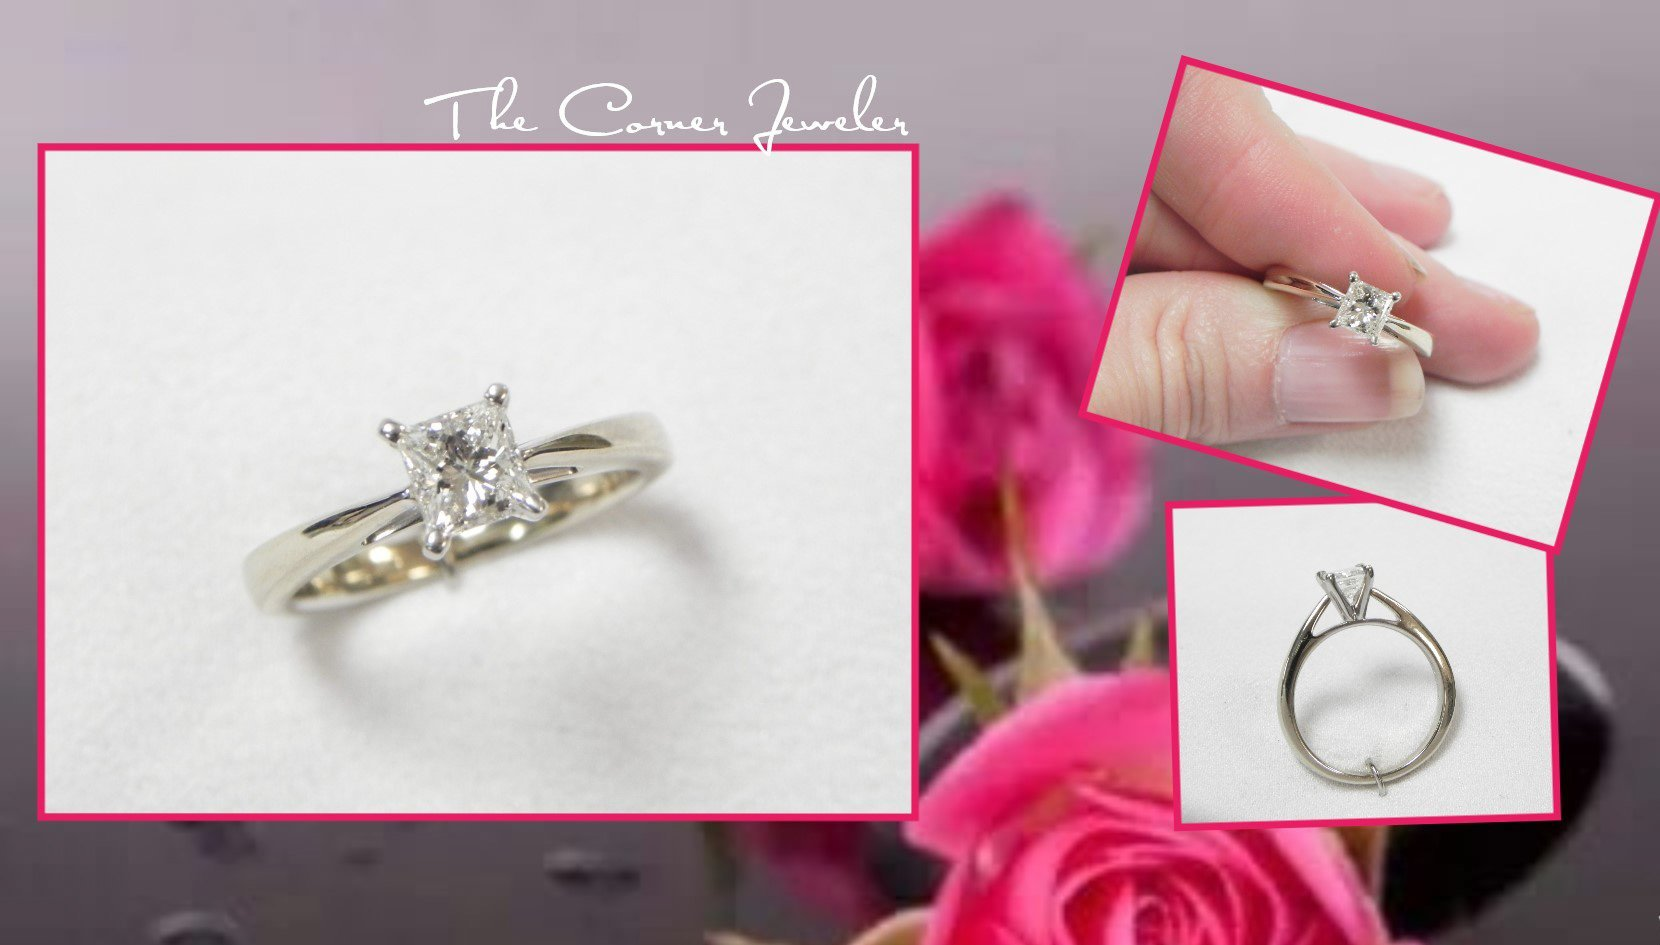 Jacksonville Nc Engagement Rings